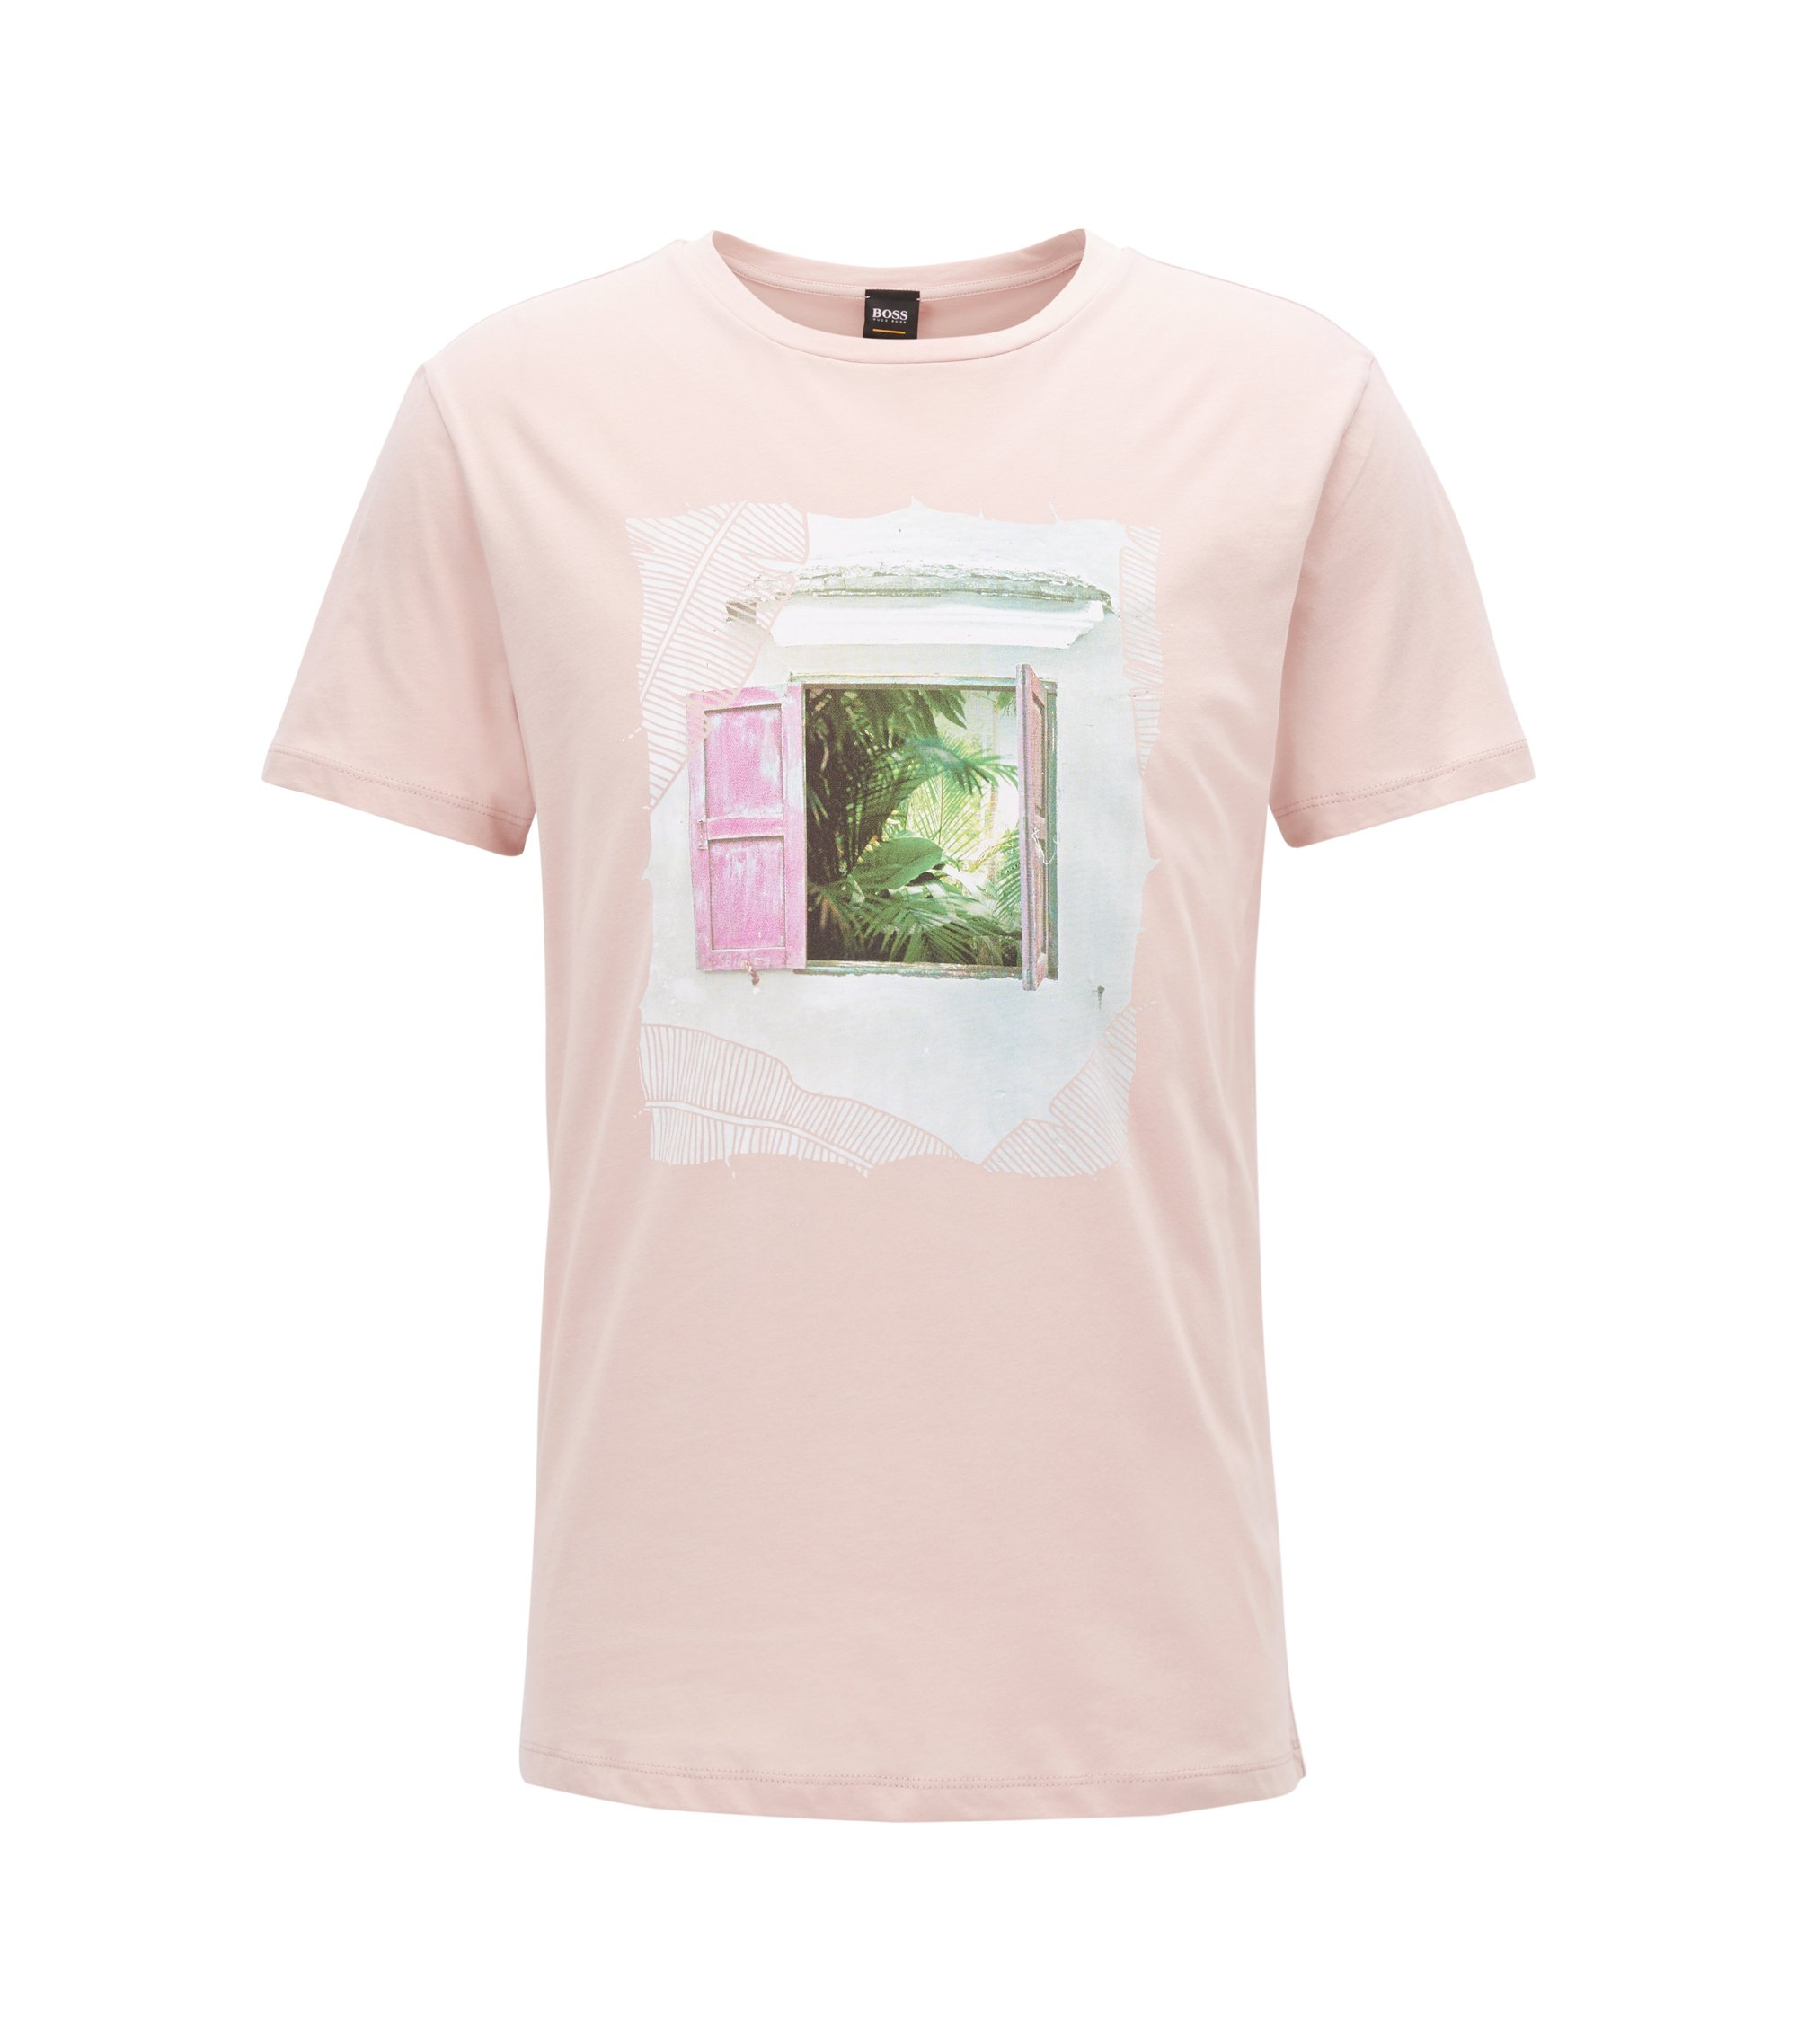 Crew-neck cotton T-shirt with Cuba-inspired graphic, light pink